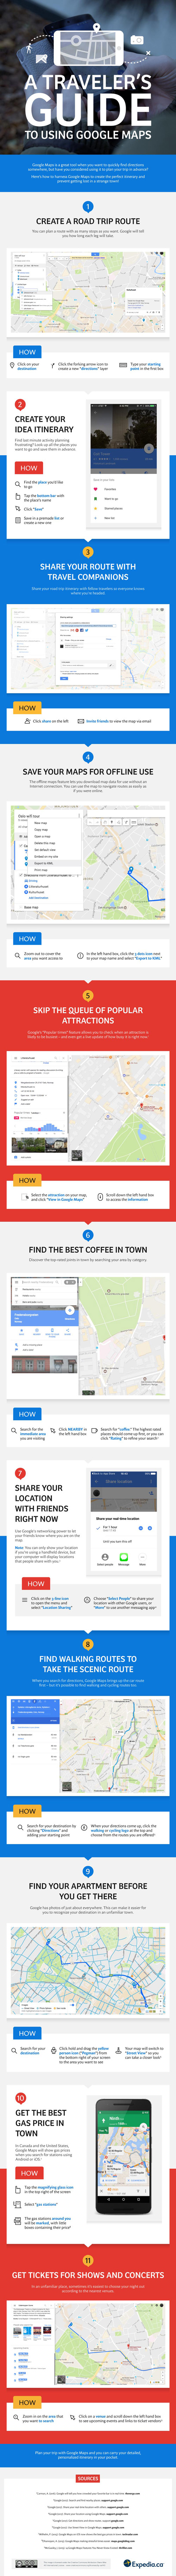 guide to using google maps